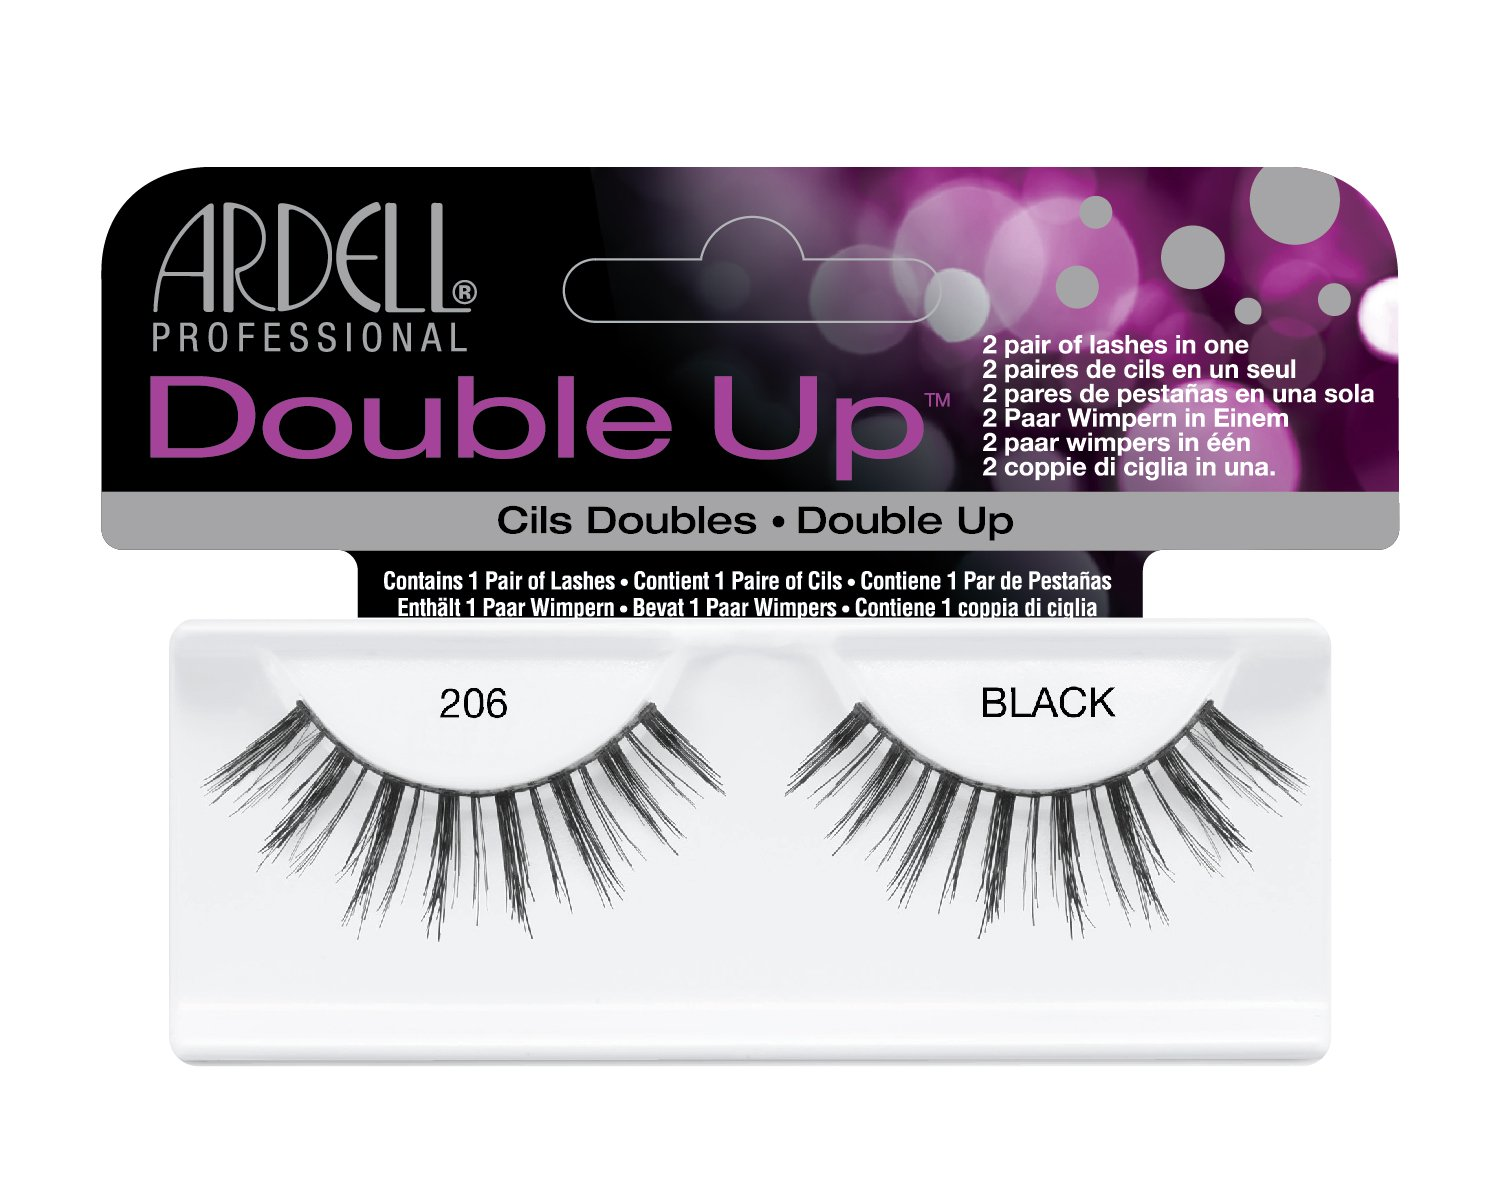 547a0af98da Amazon.com : Ardell Double Up Lashes, 206 : Fake Eyelashes And Adhesives :  Beauty